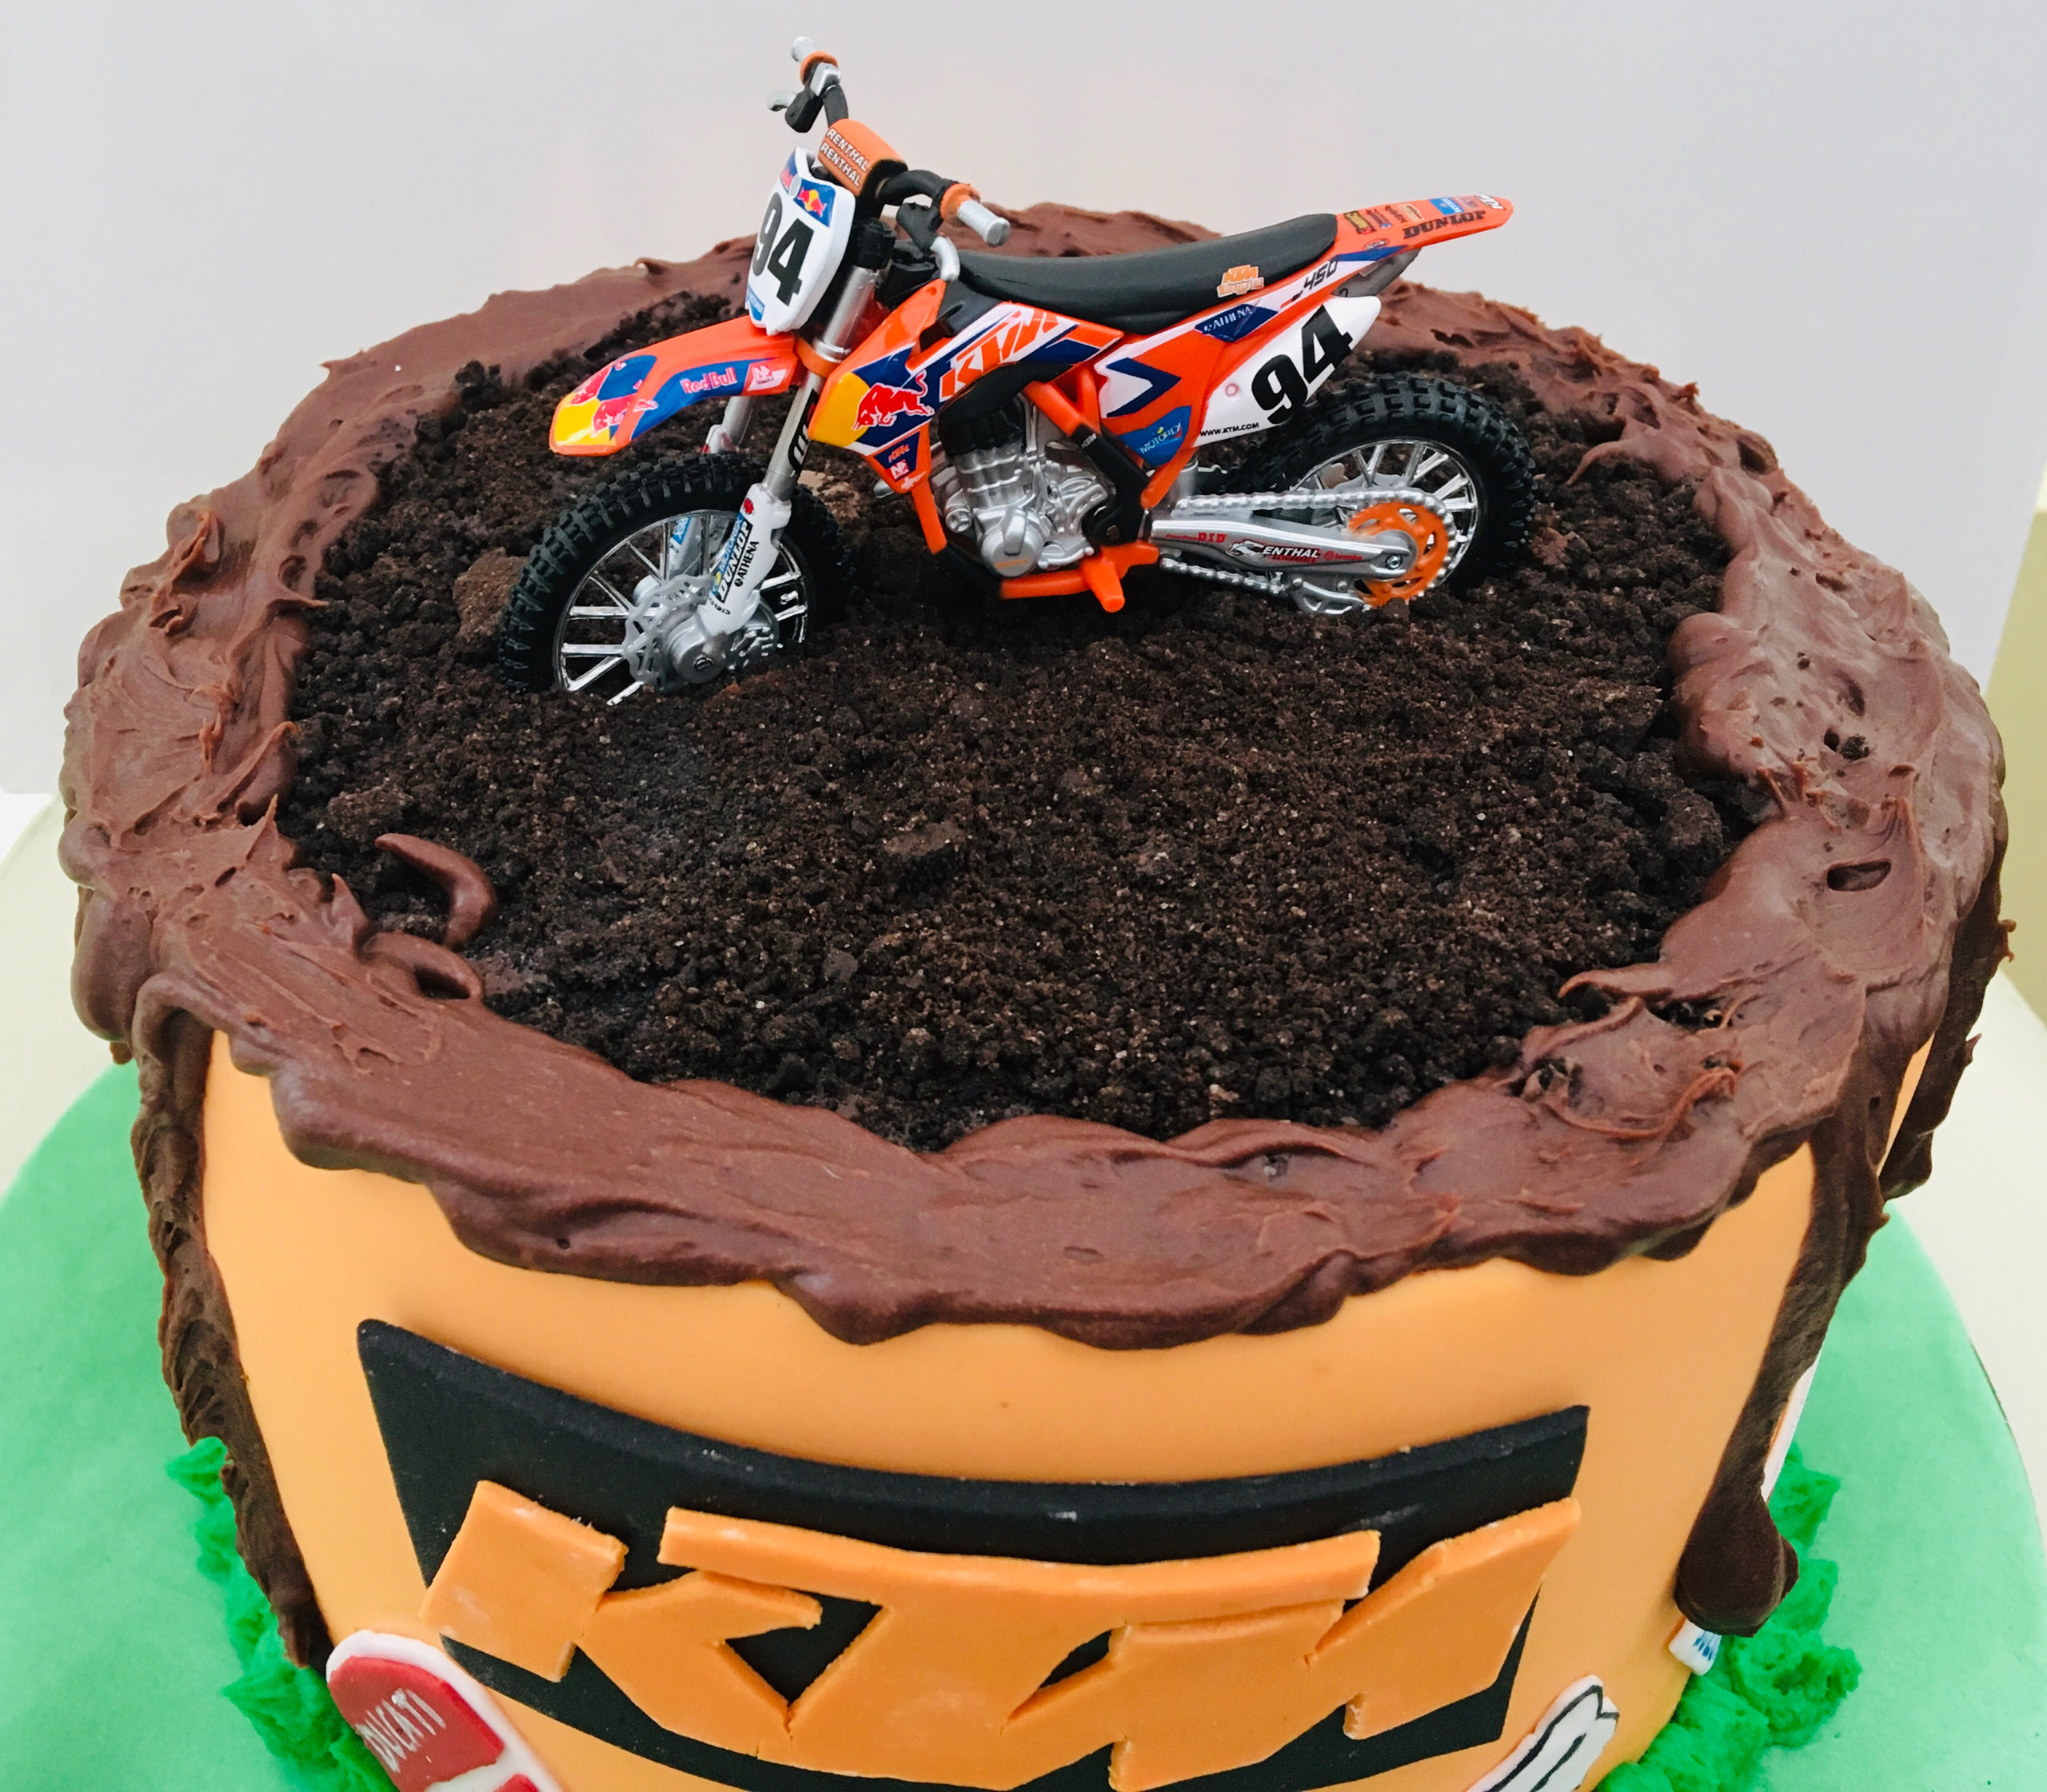 Who Wants To See A Dirt Bike Cake Baking For Therapy